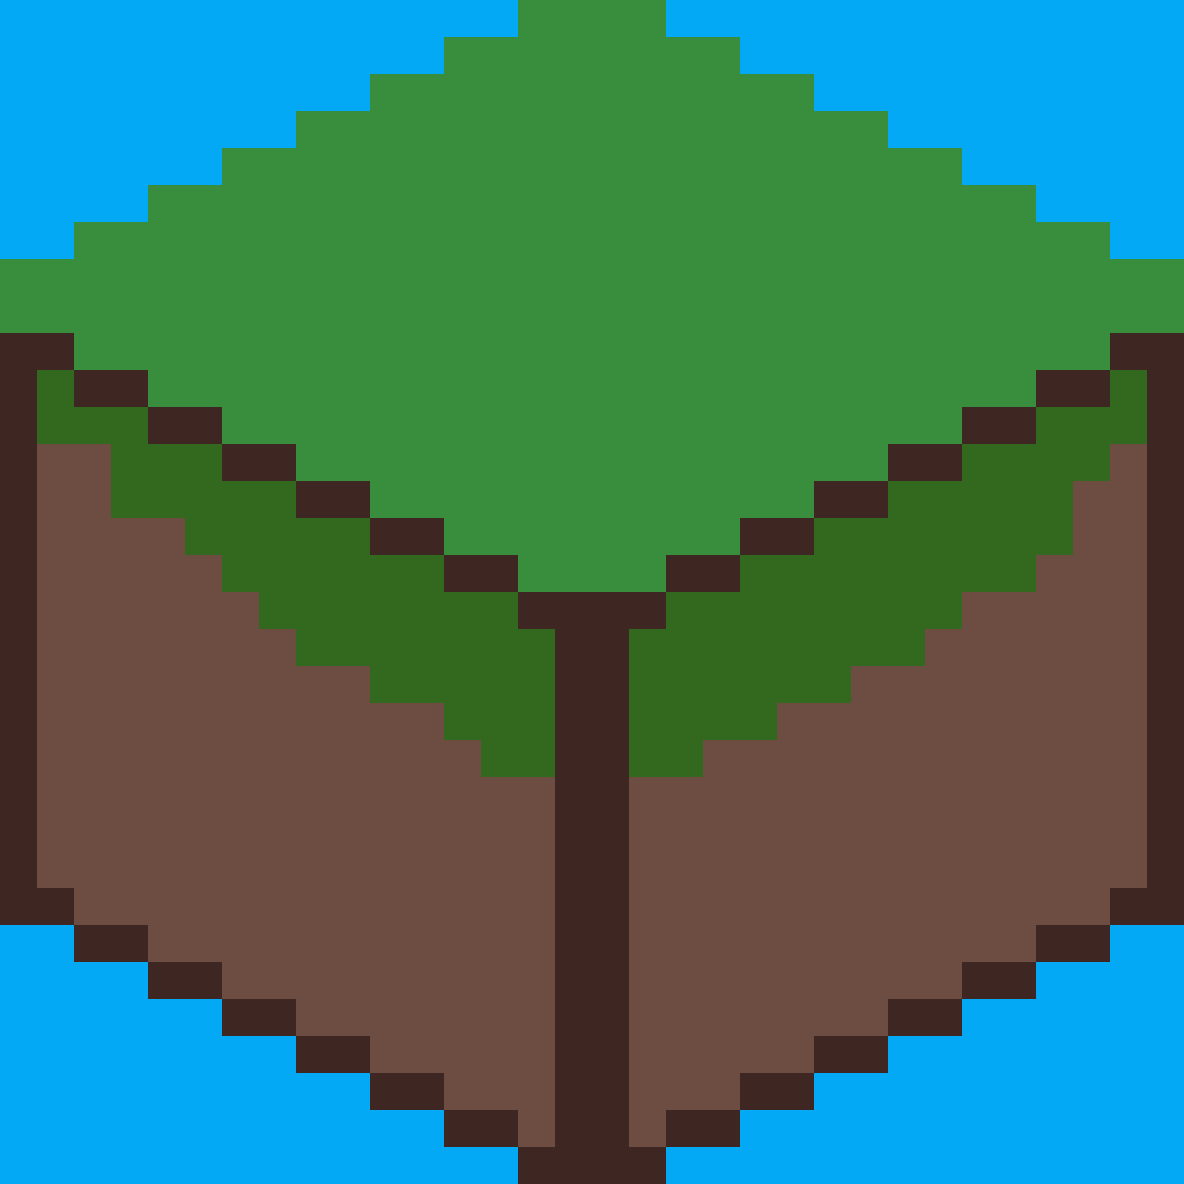 Basic Grass Tile by The-challenger